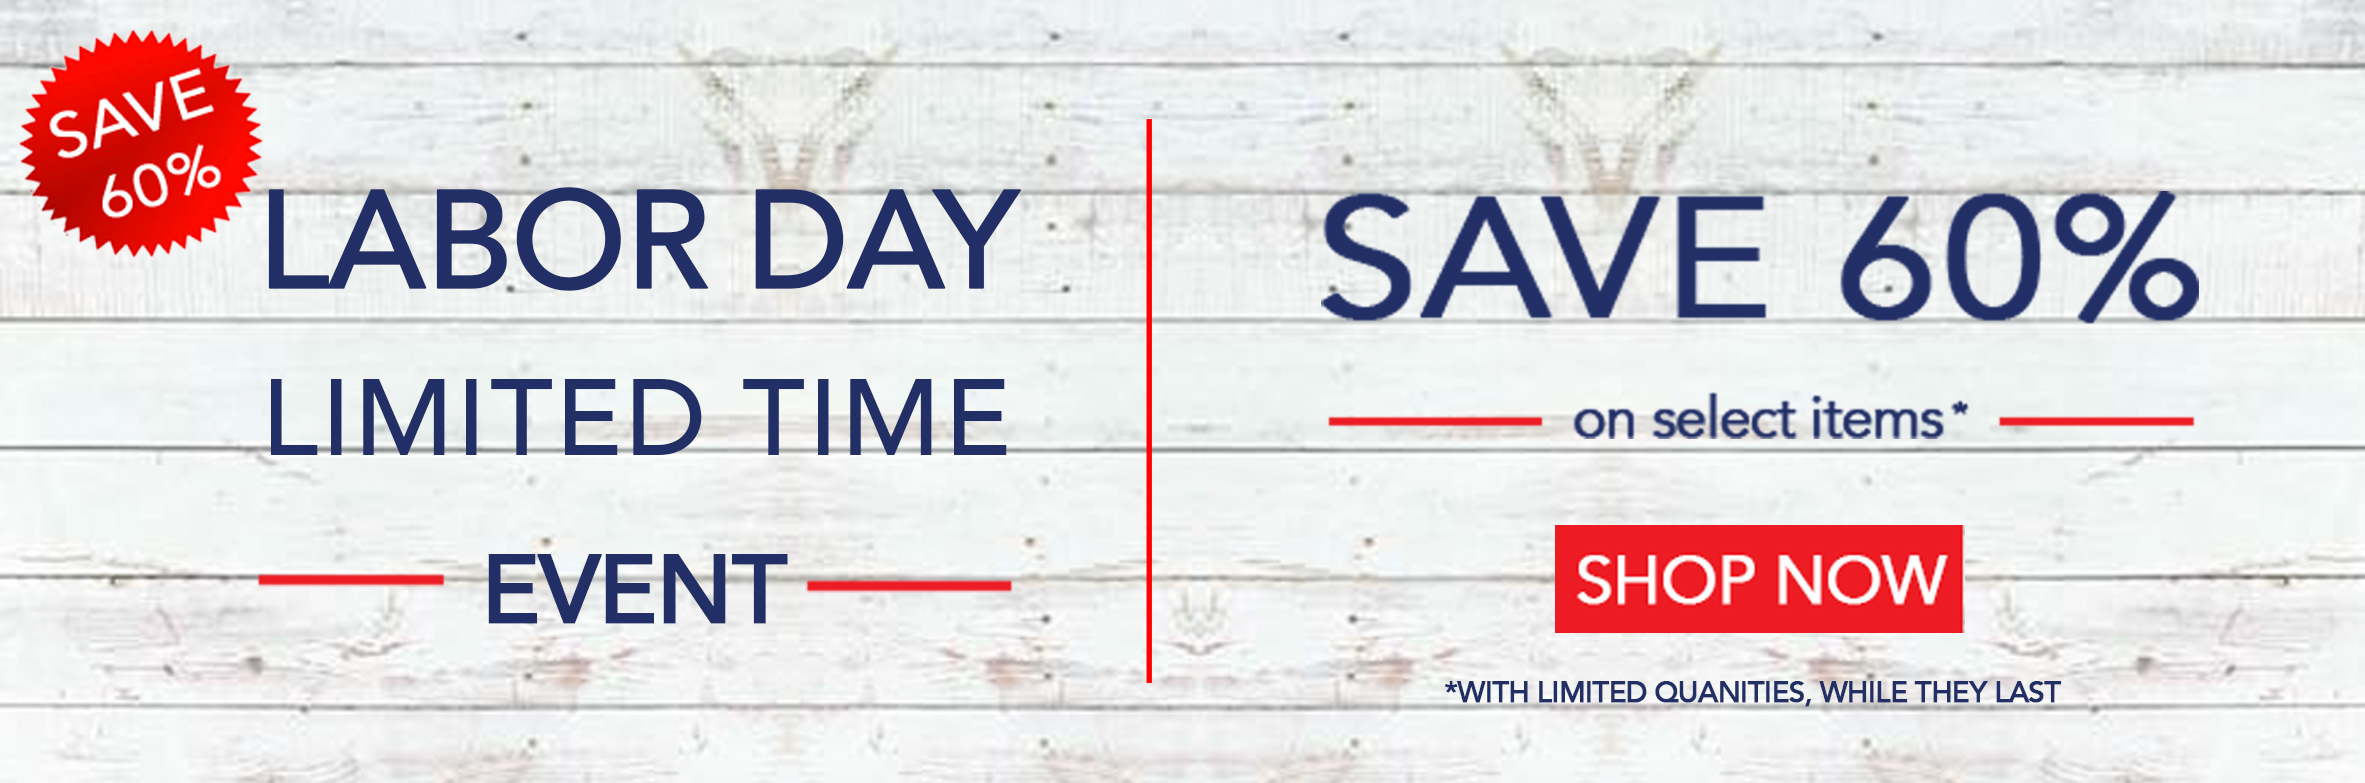 Shop our Labor Day Sale and save 60%. Limited time only!